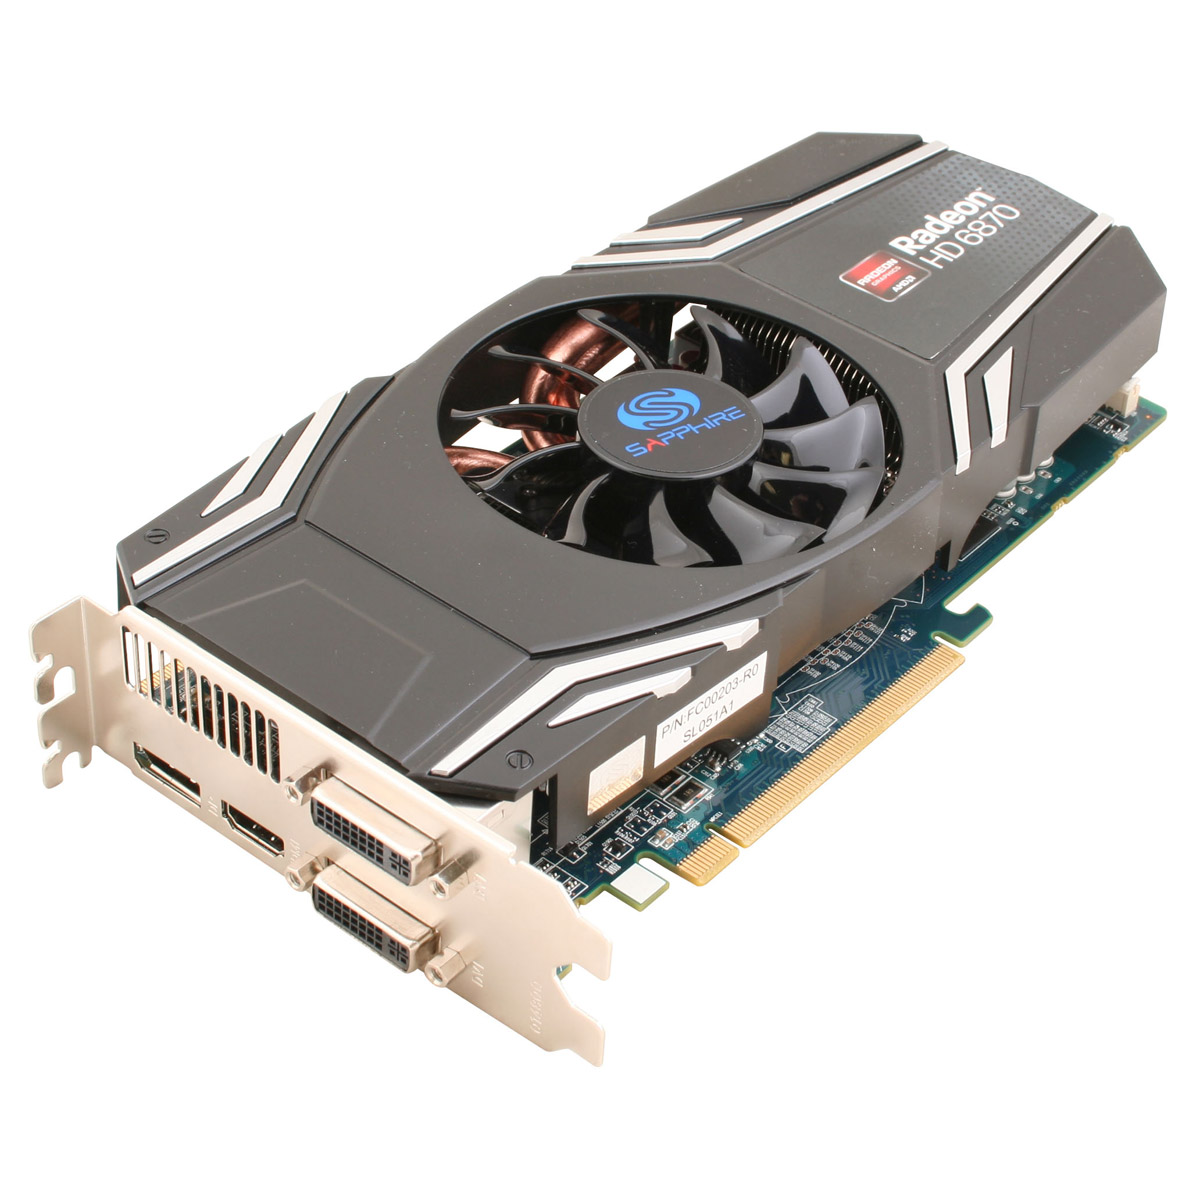 Carte graphique Sapphire Radeon HD 6870 1 GB 1 Go HDMI/Dual DVI/DisplayPort - PCI Express (AMD Radeon HD 6870)